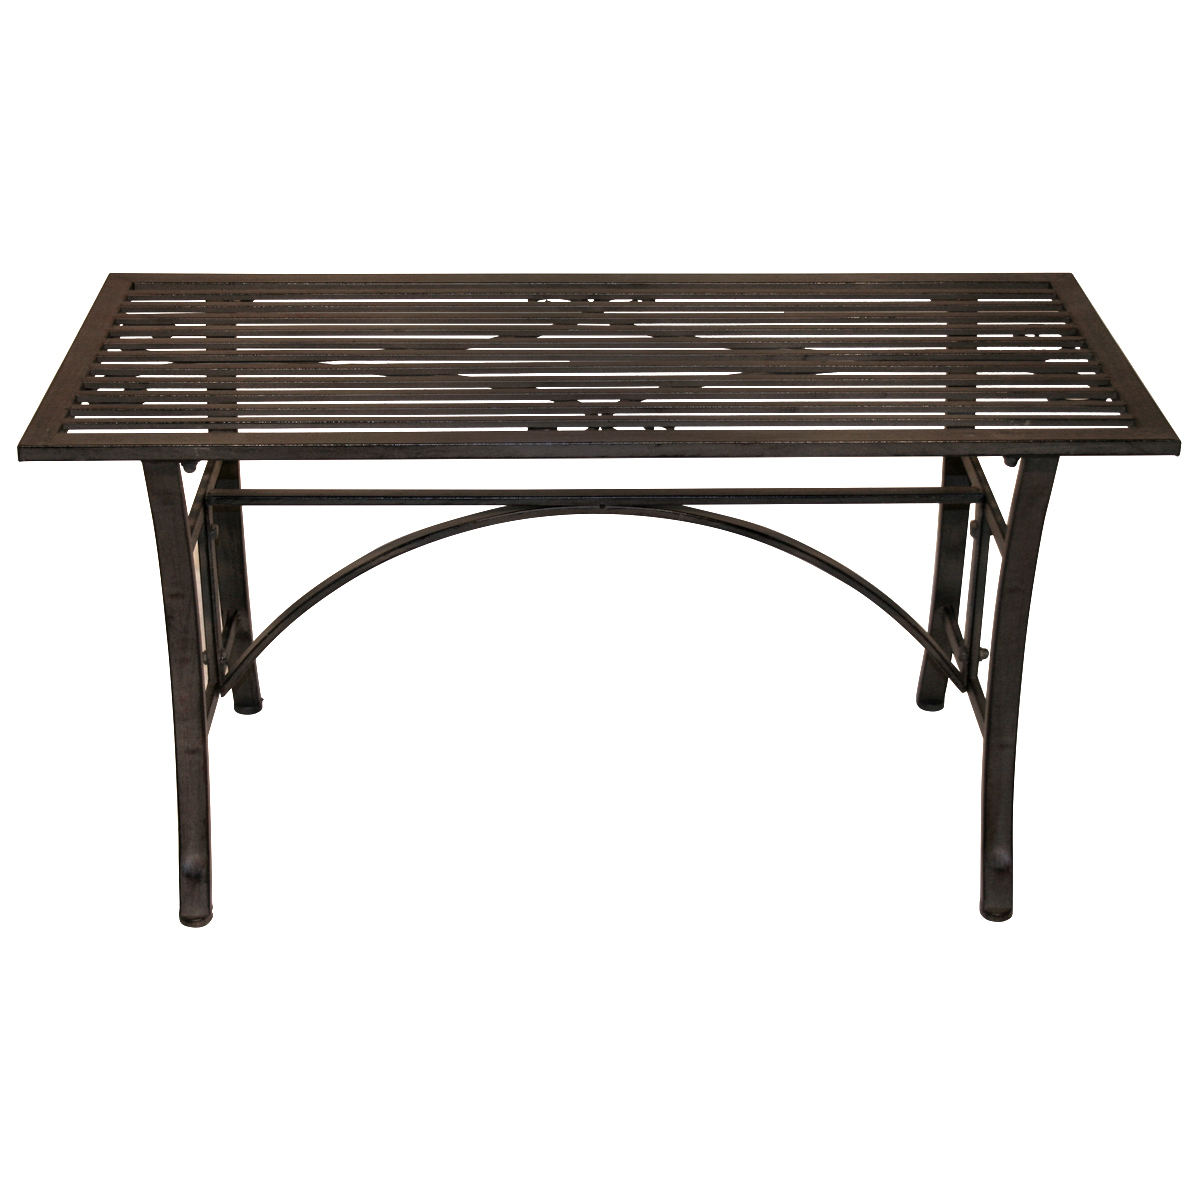 Charles bentley wrought iron coffee table outdoor patio garden metal table grey ebay Wrought iron coffee tables